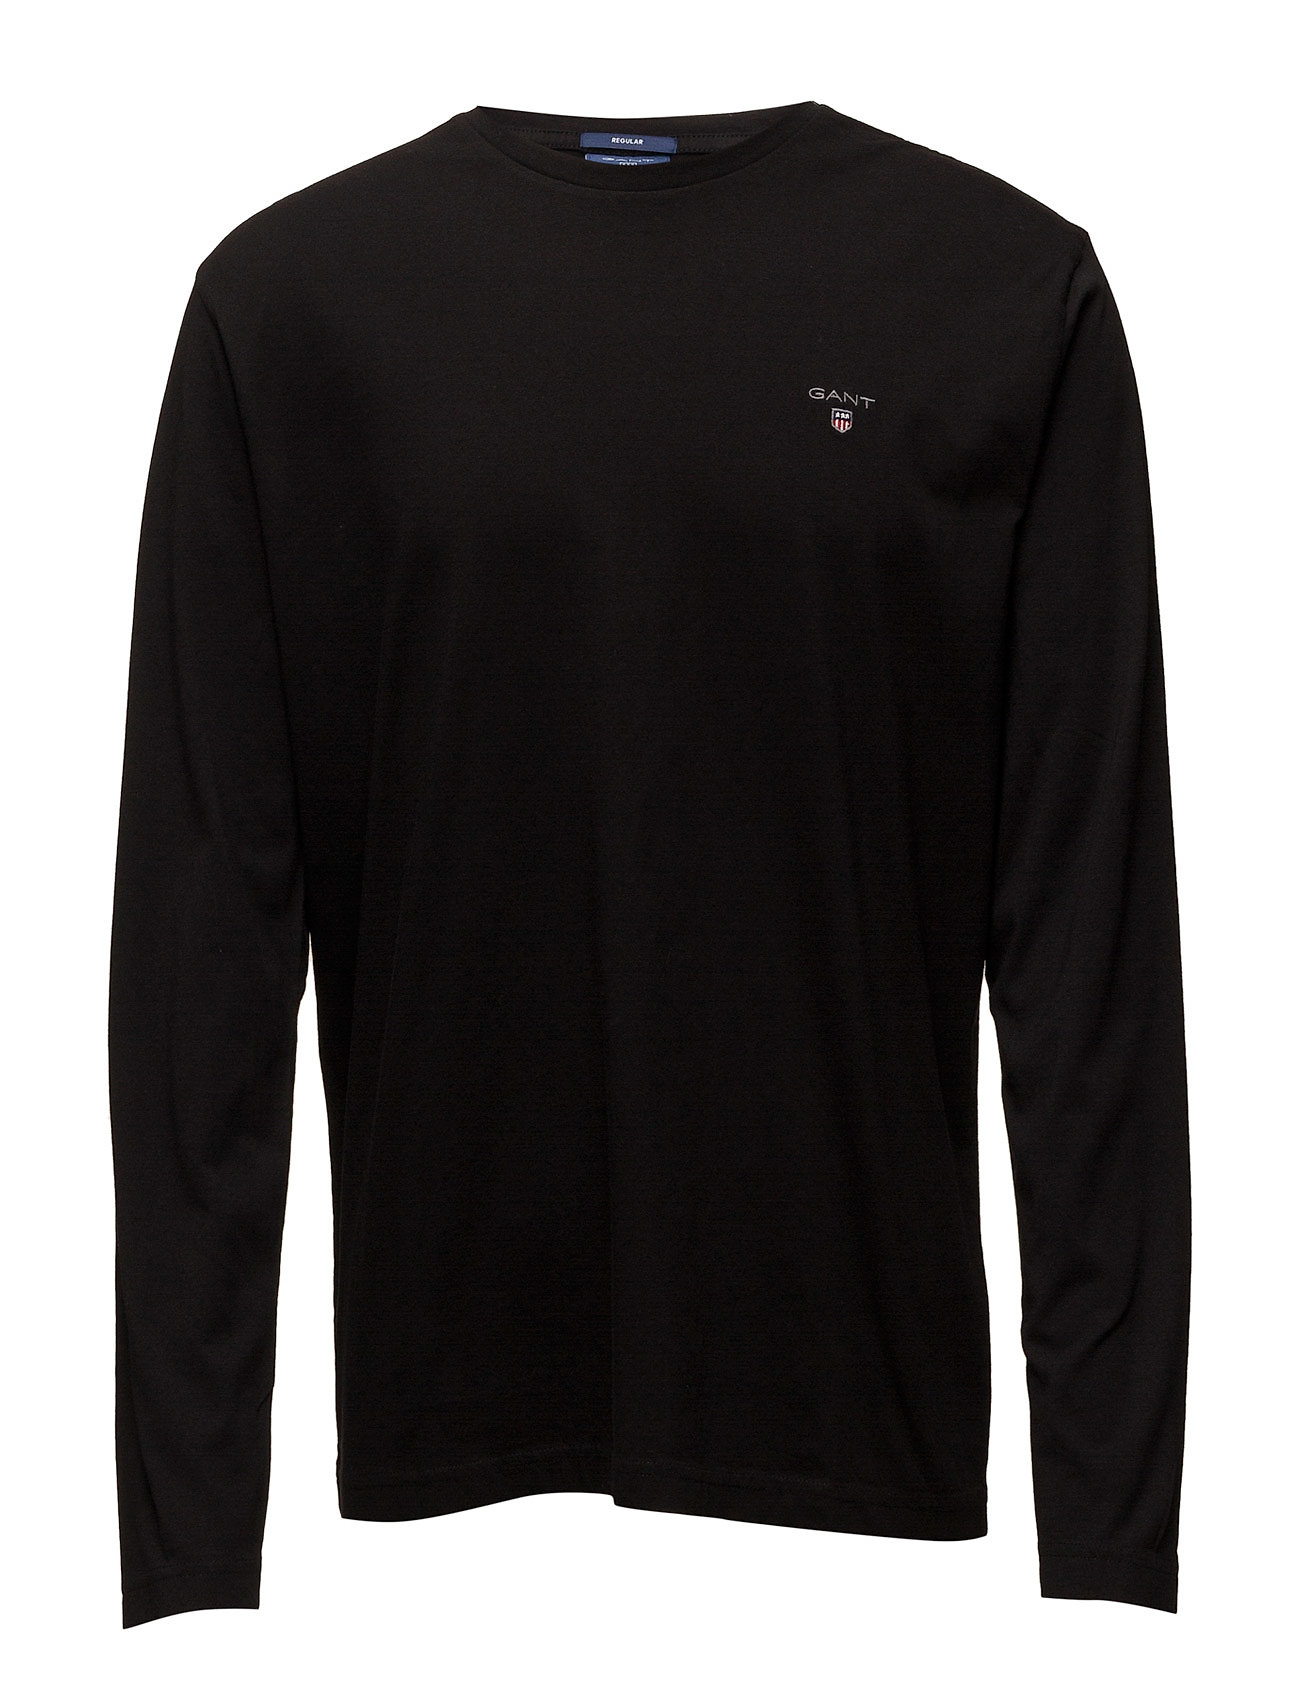 Gant THE ORIGINAL LS T-SHIRT - BLACK